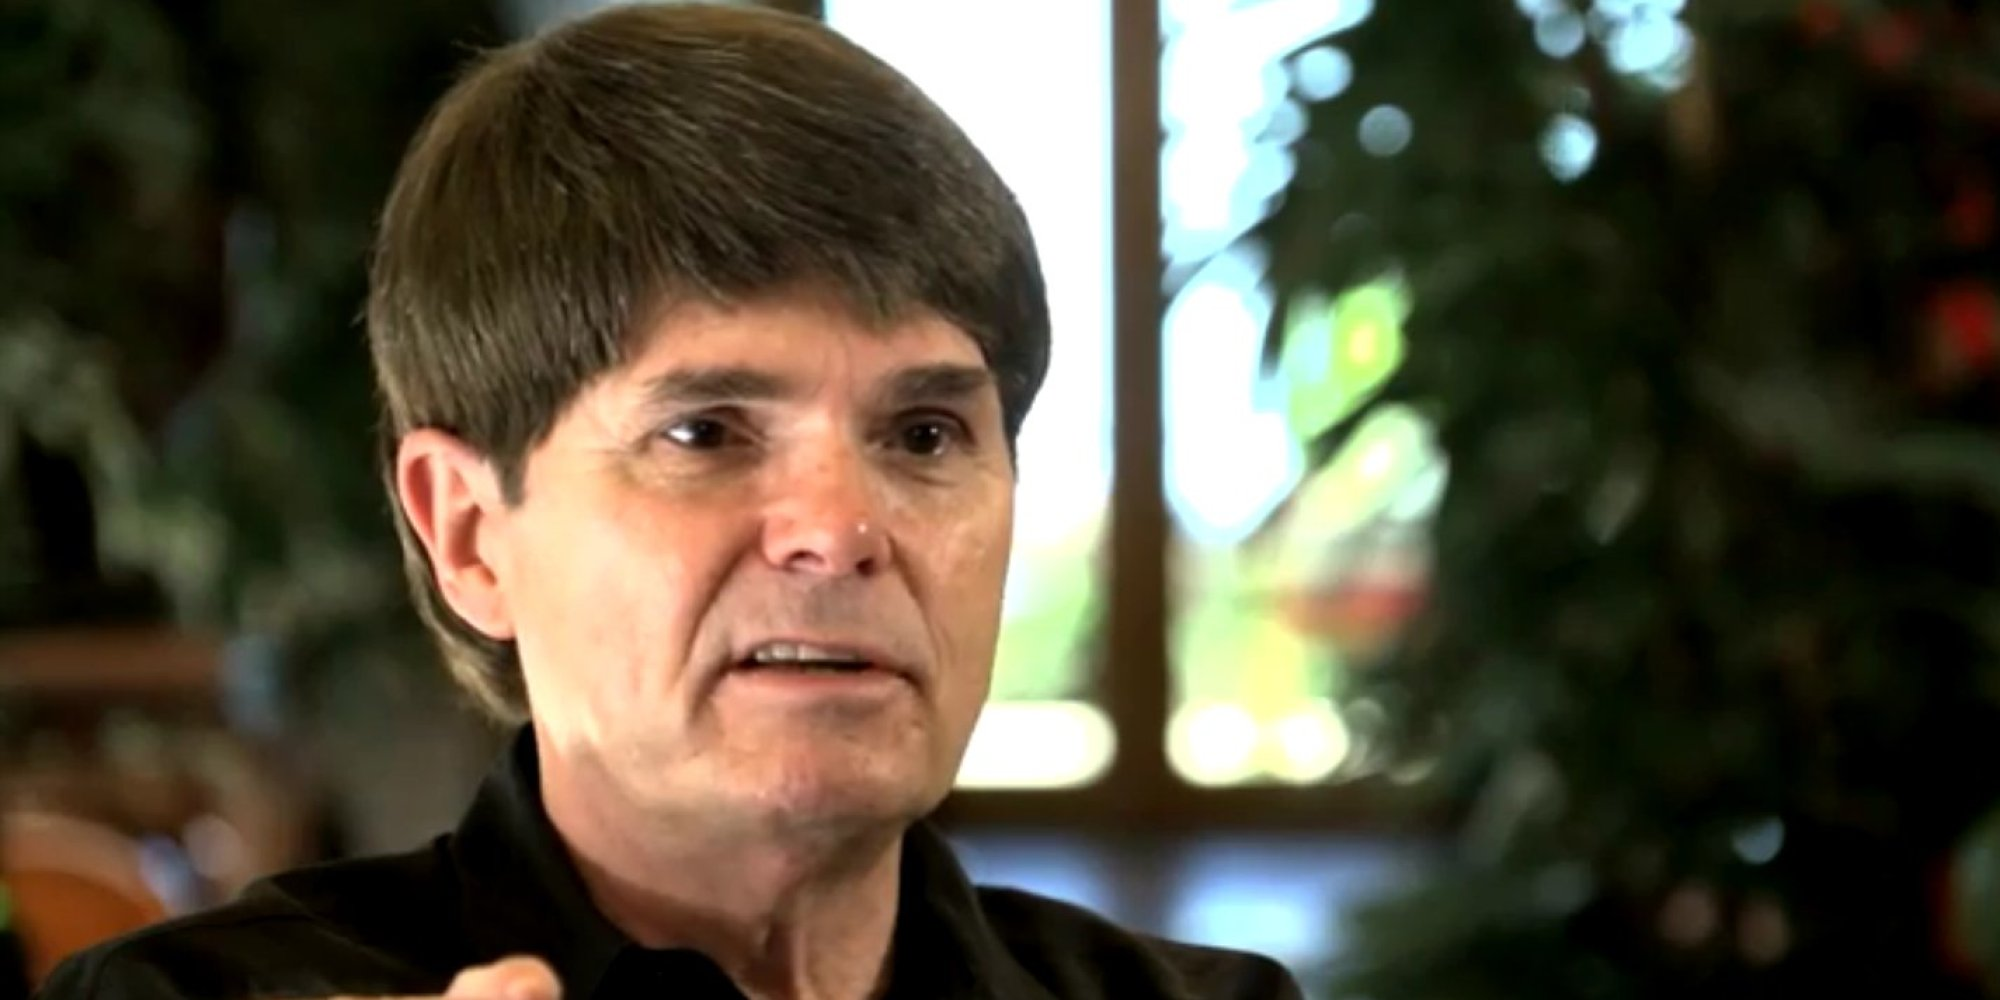 dean koontz interview  a heartwarming ode to books and